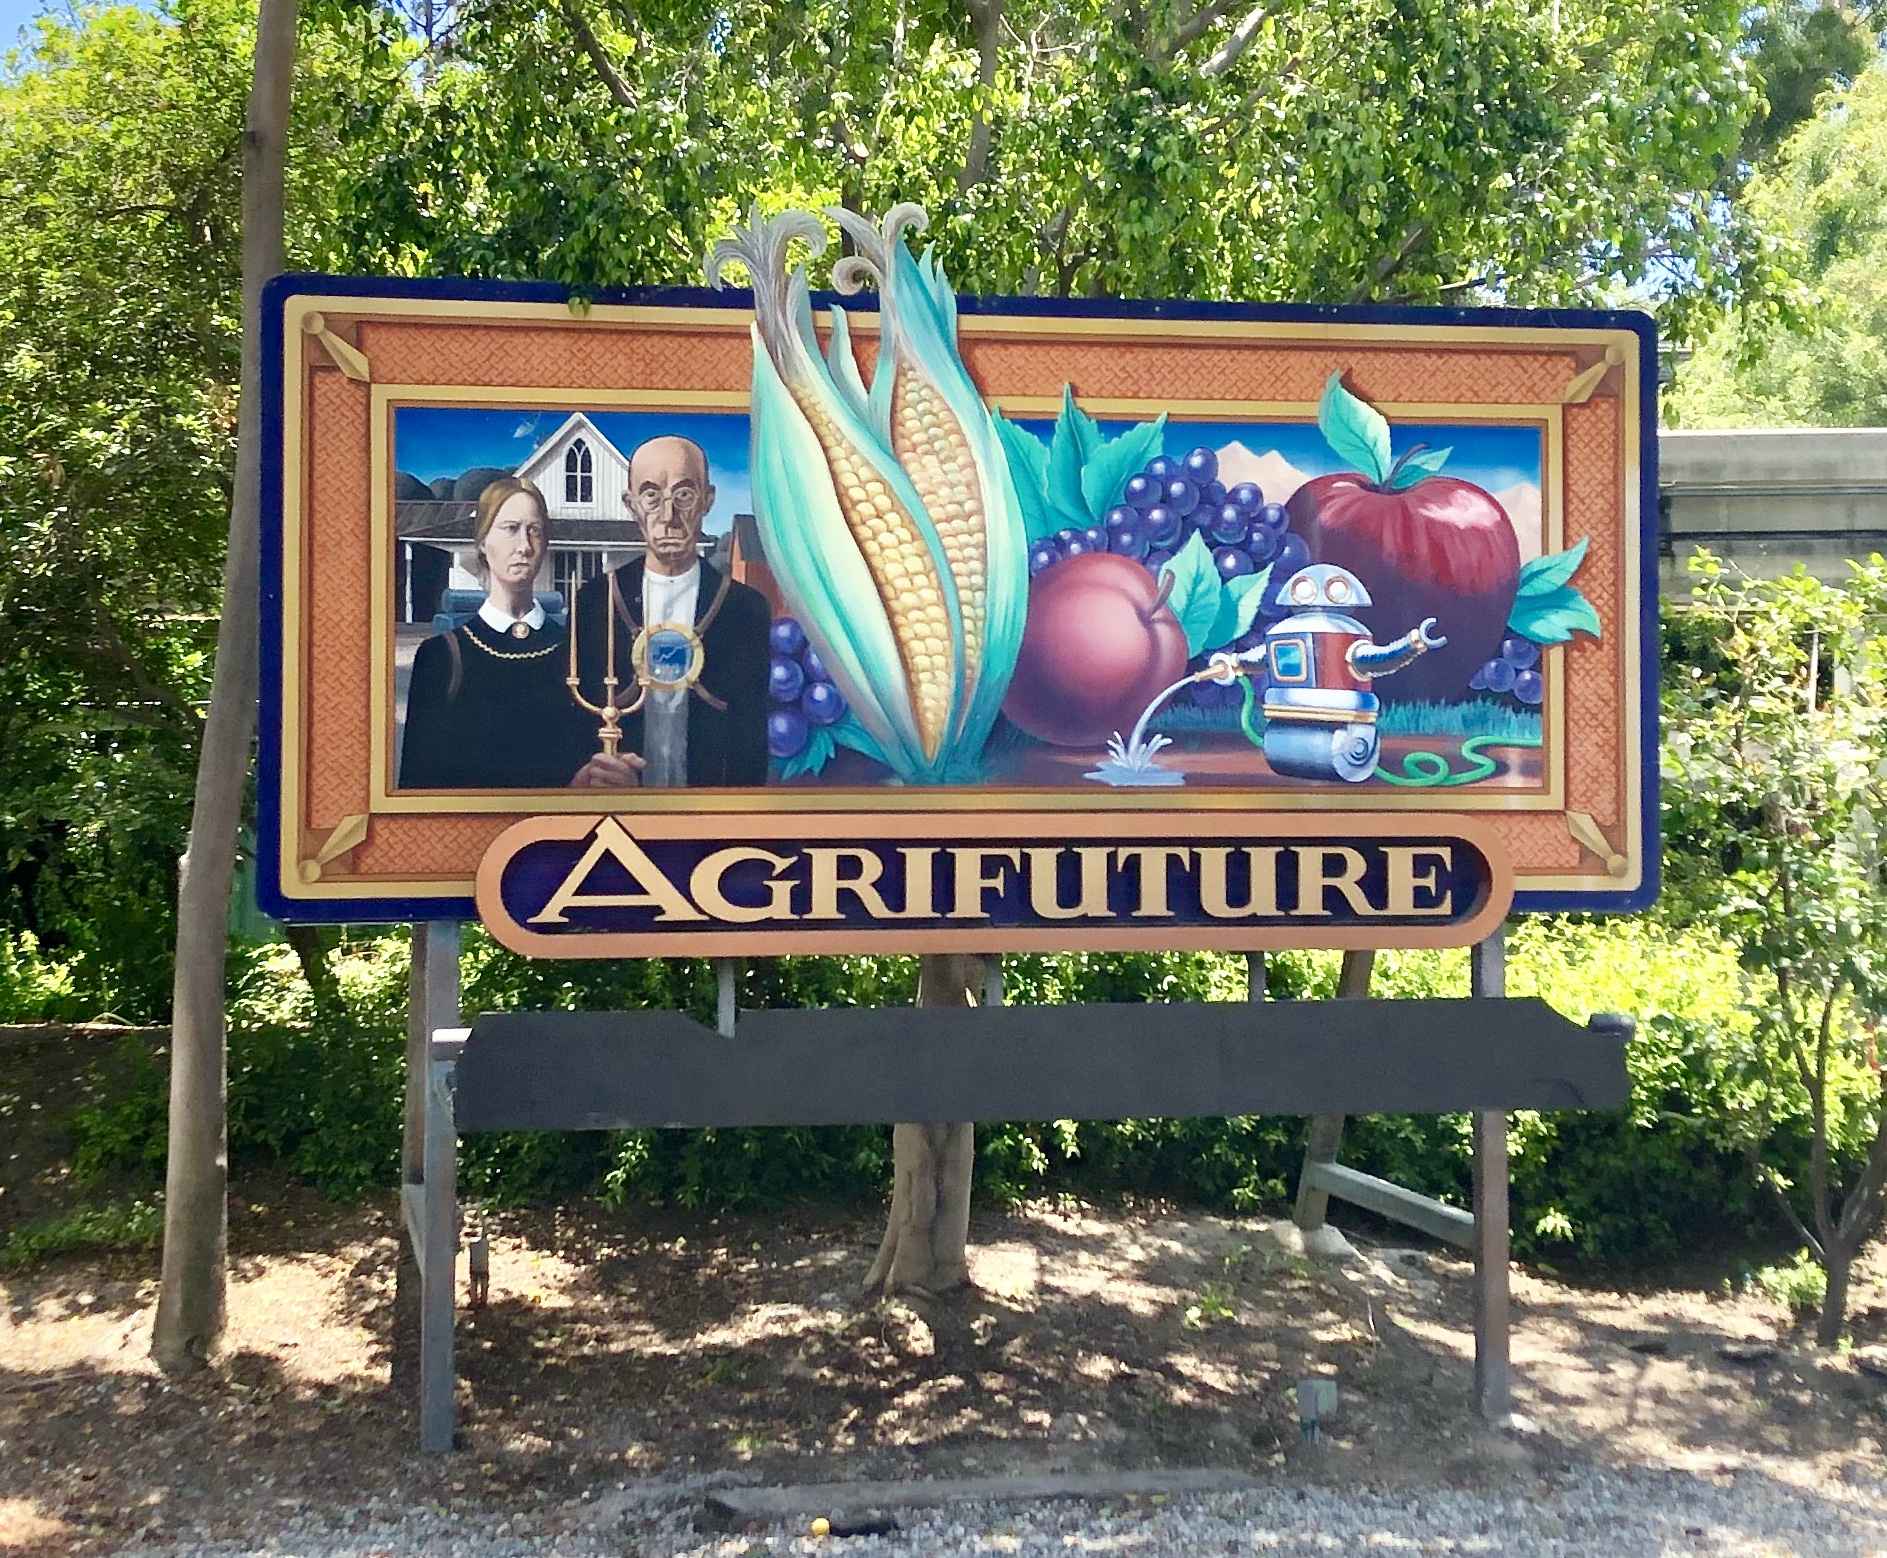 Agrifuture sign at Disneyland: Discover 5 secrets of Tomorrowland